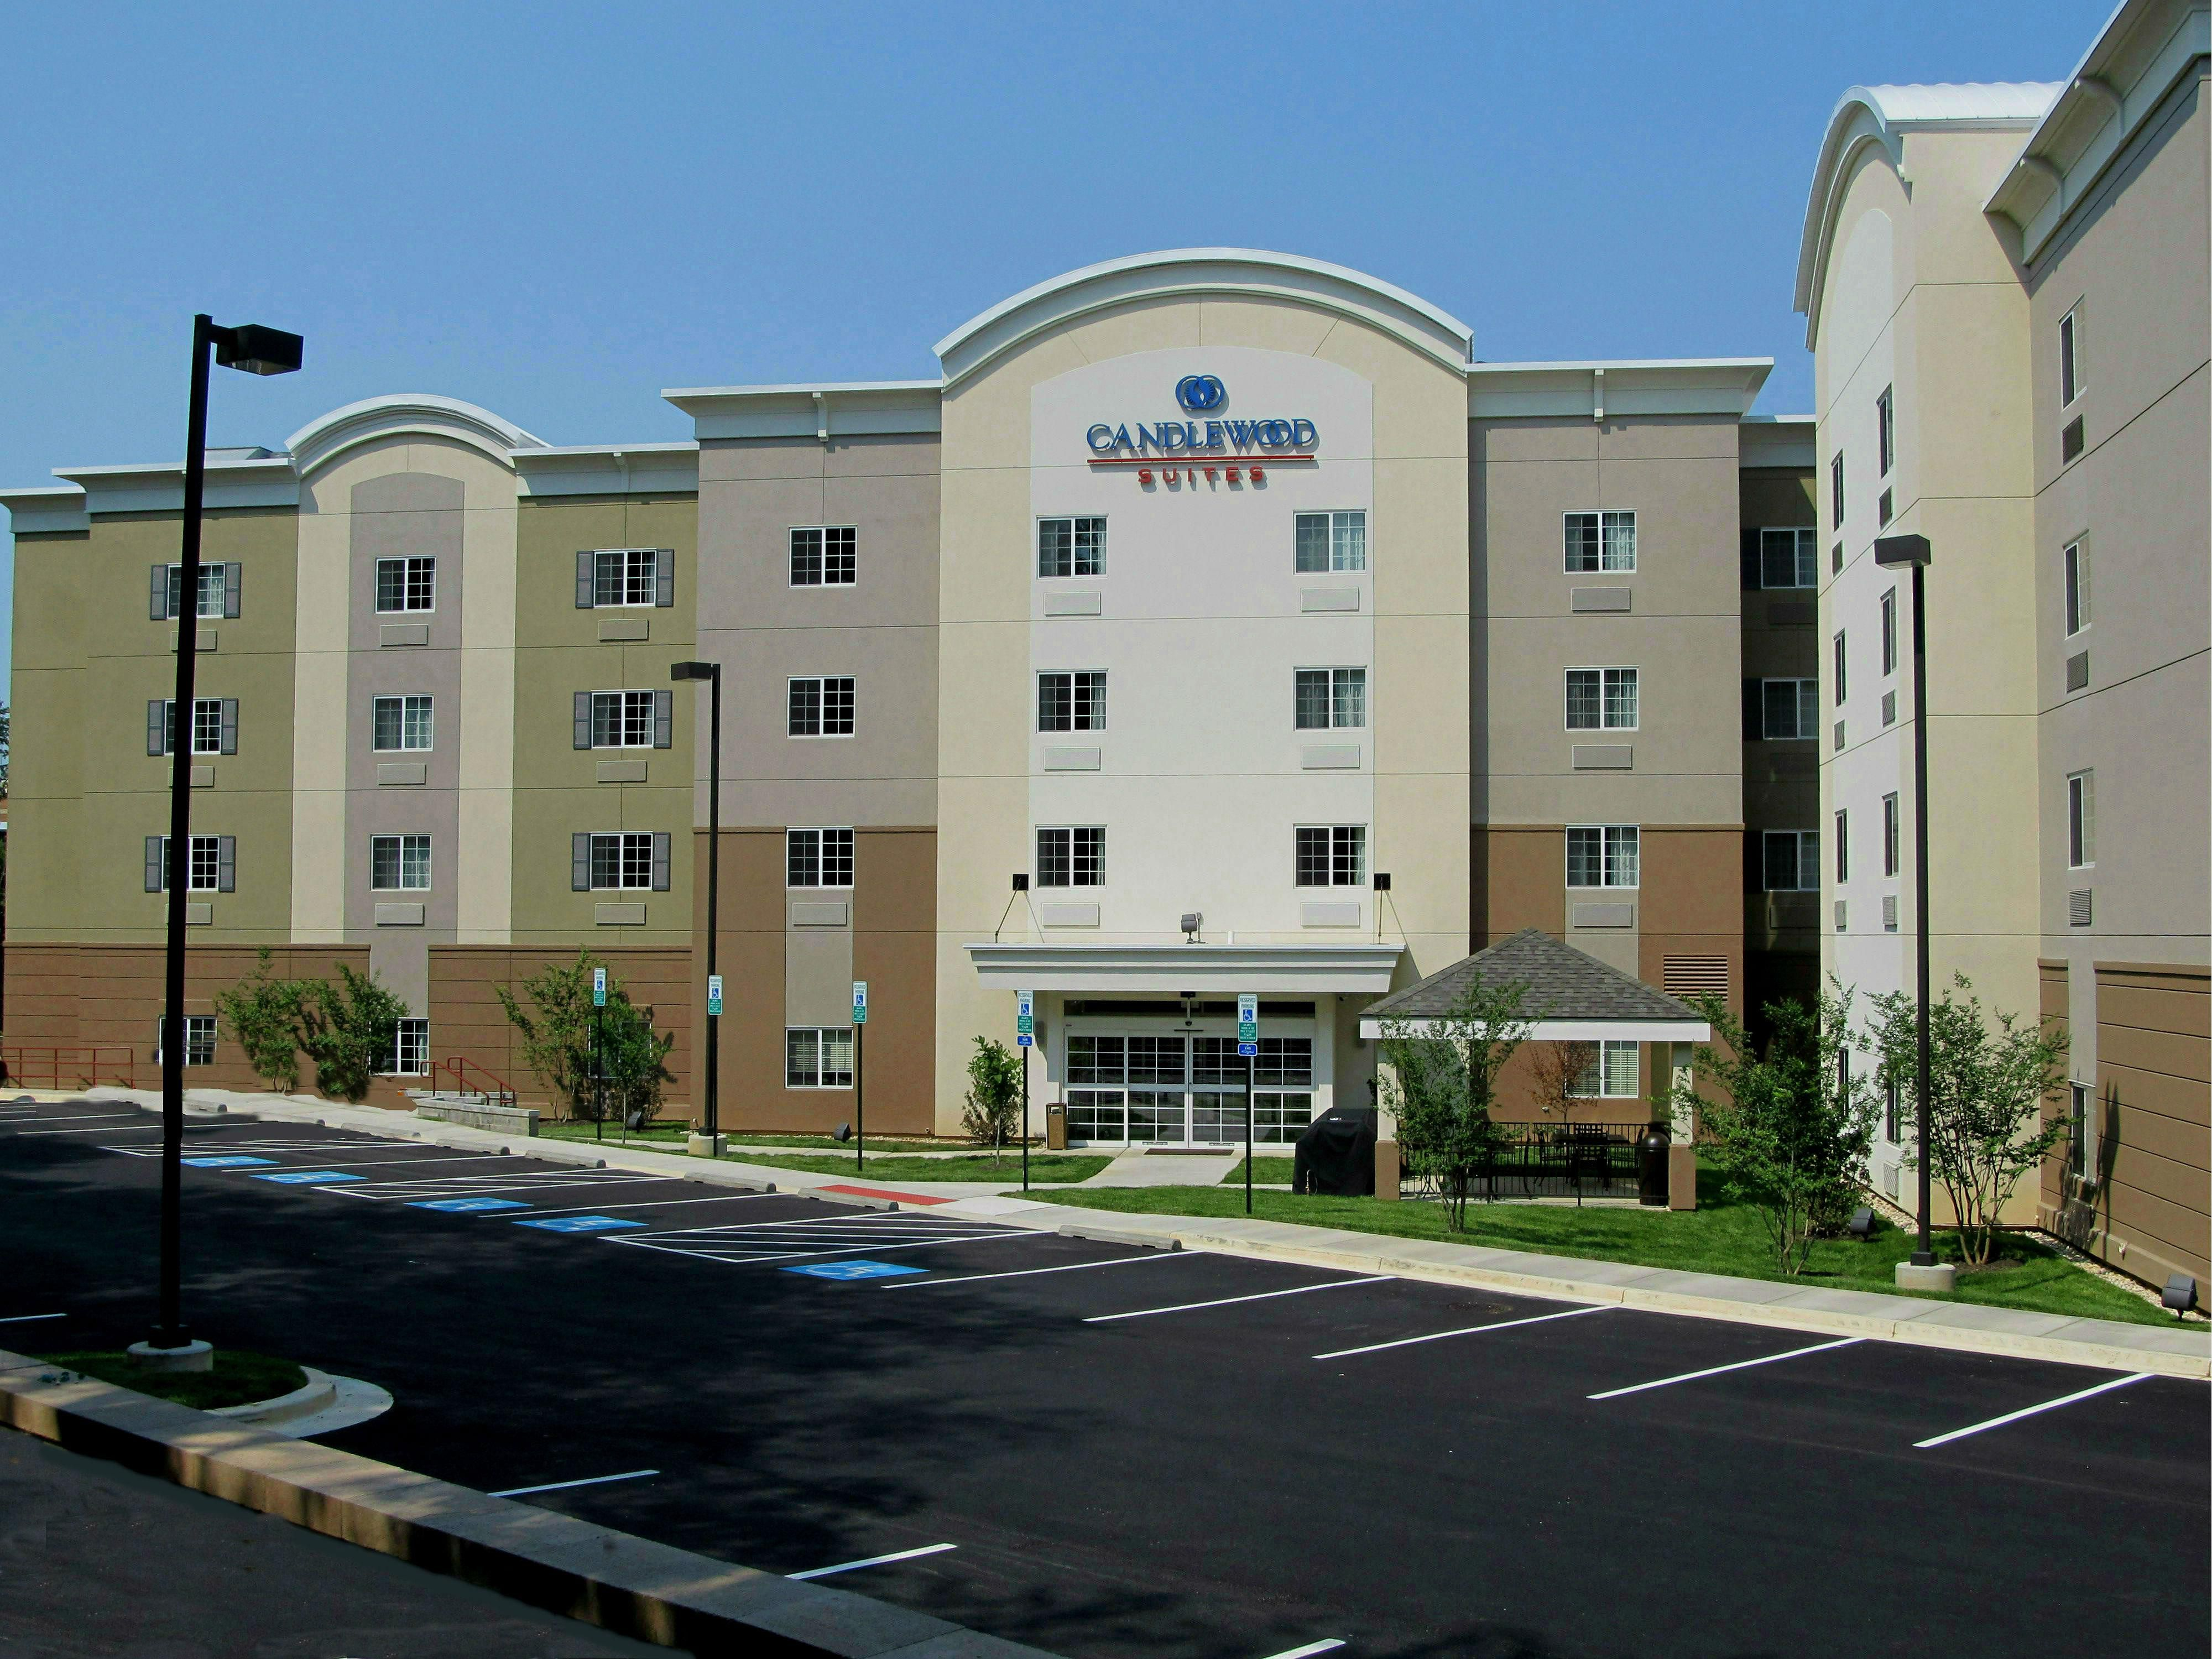 Candlewood Suites Arundel Mills Bwi Airport